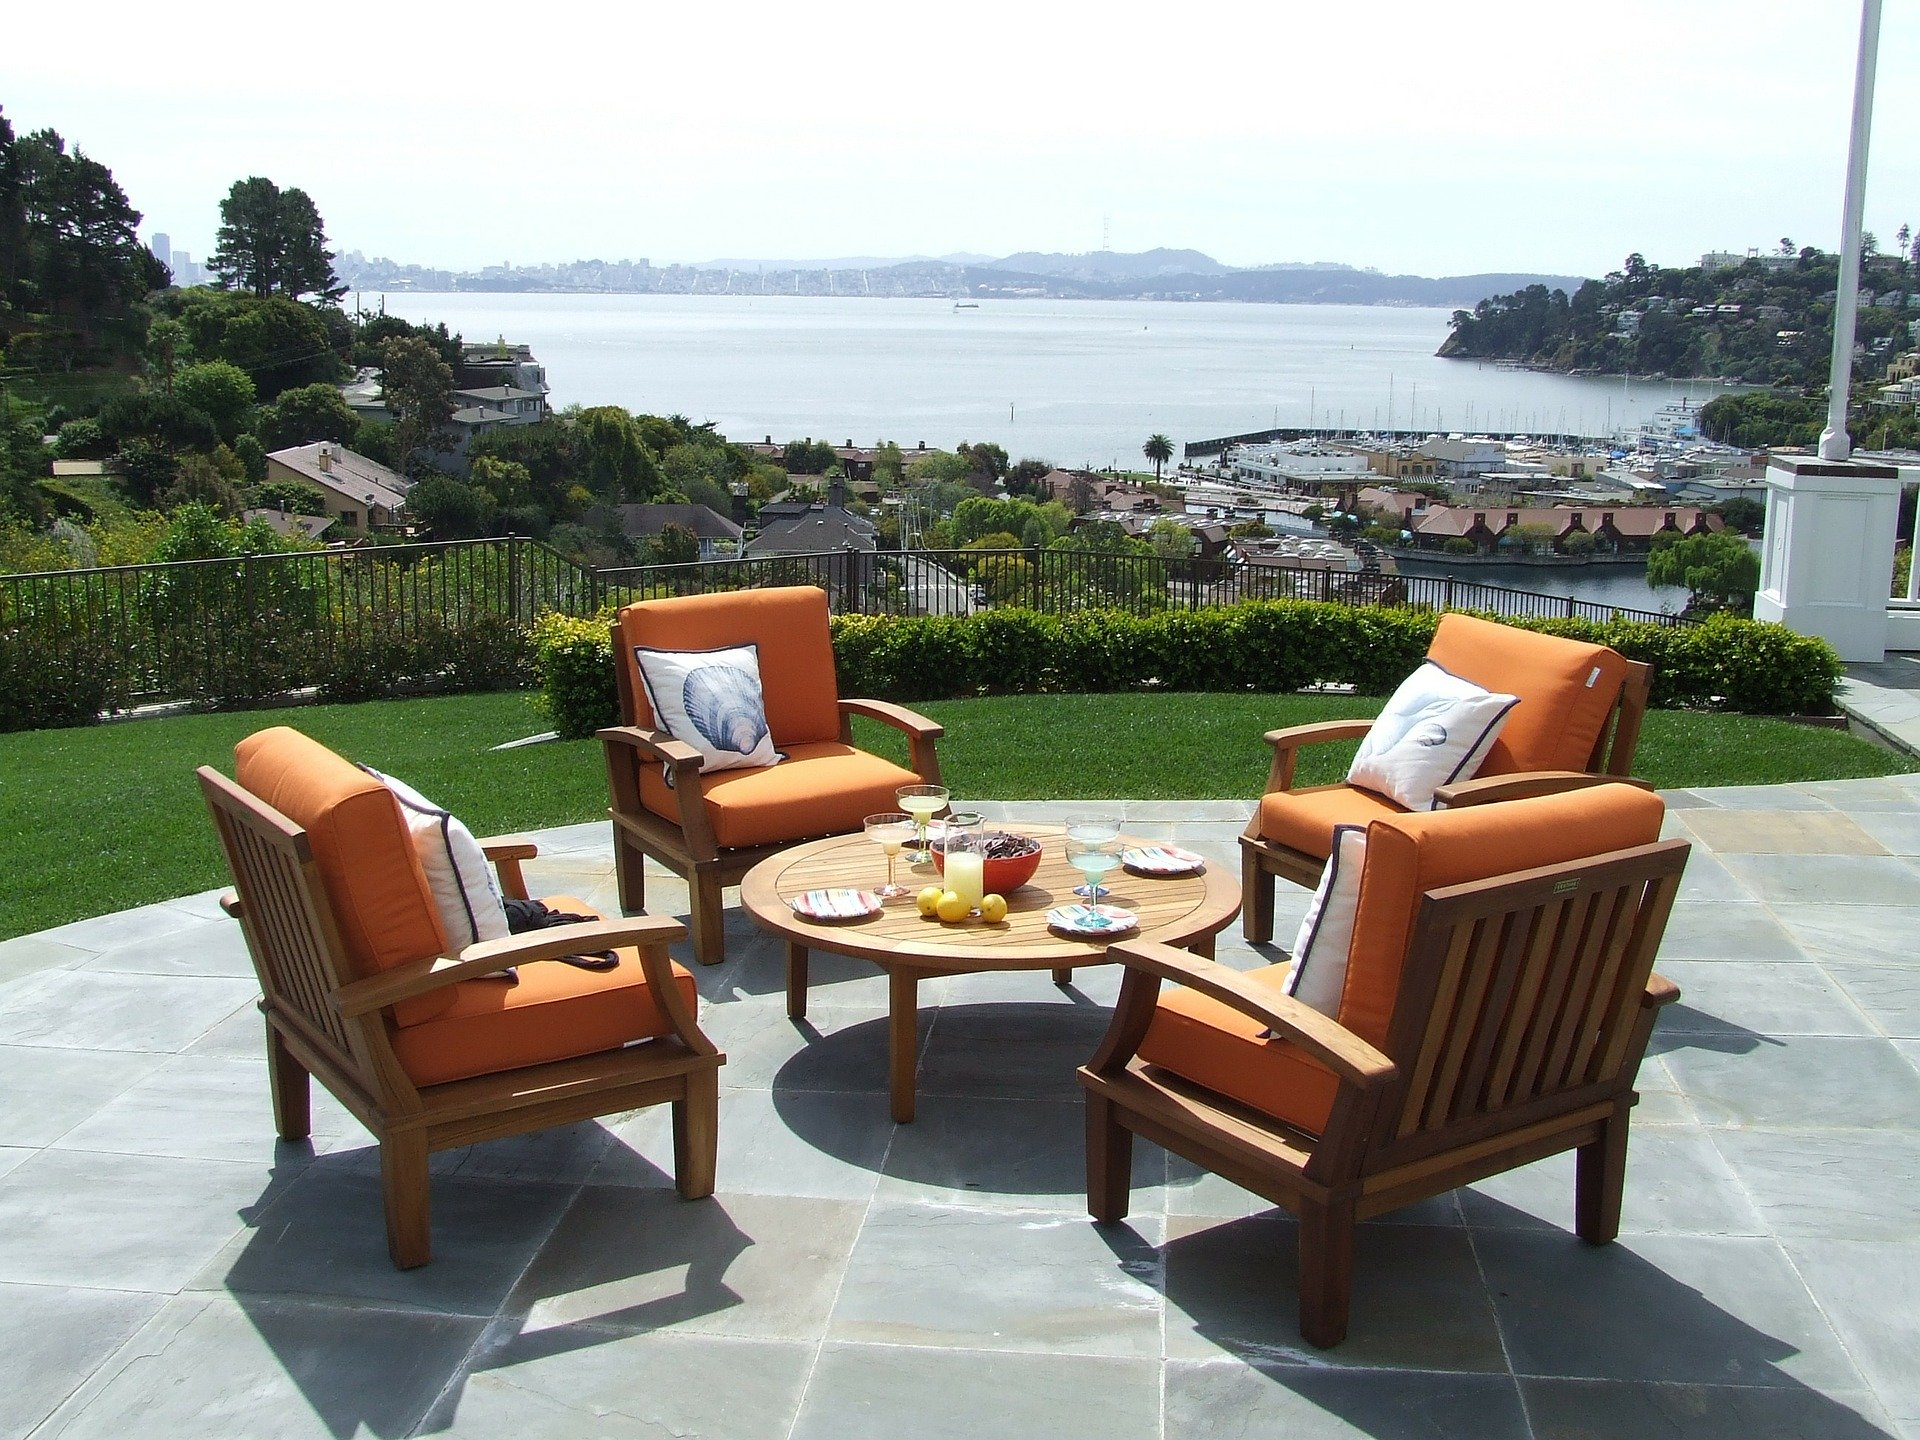 The Best Guide for Purchasing Patio Chair Covers